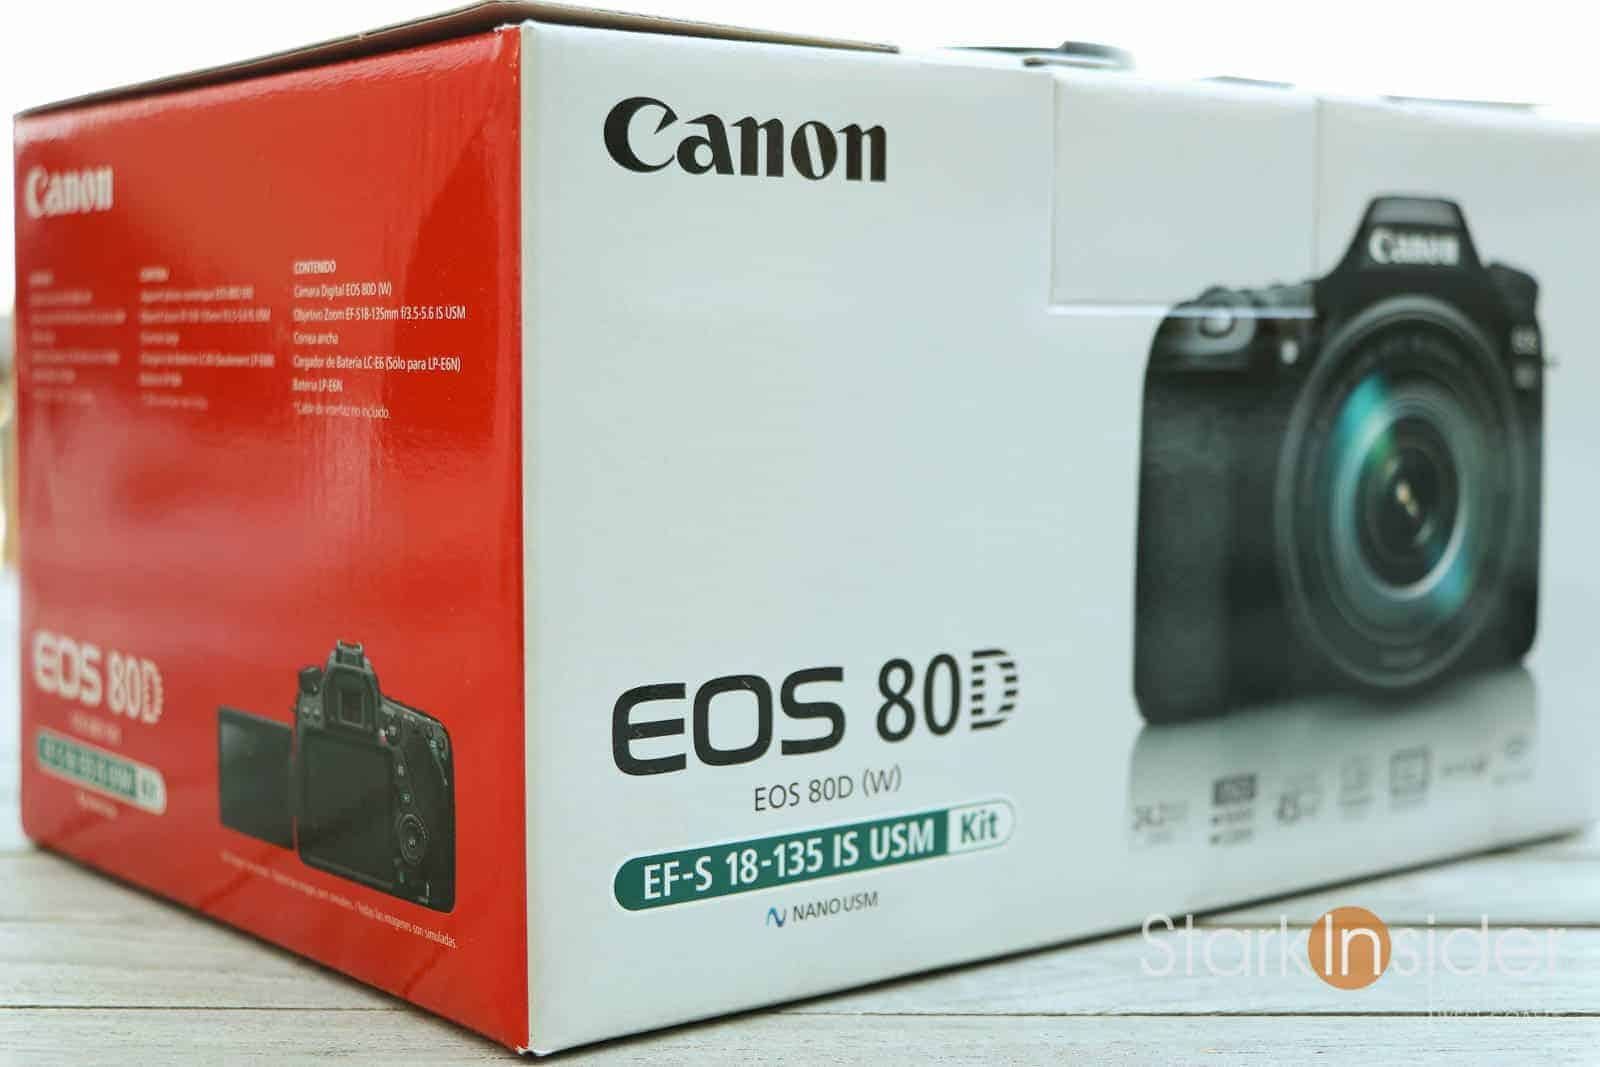 Canon EOS 80D: Q&A on video features | Stark Insider